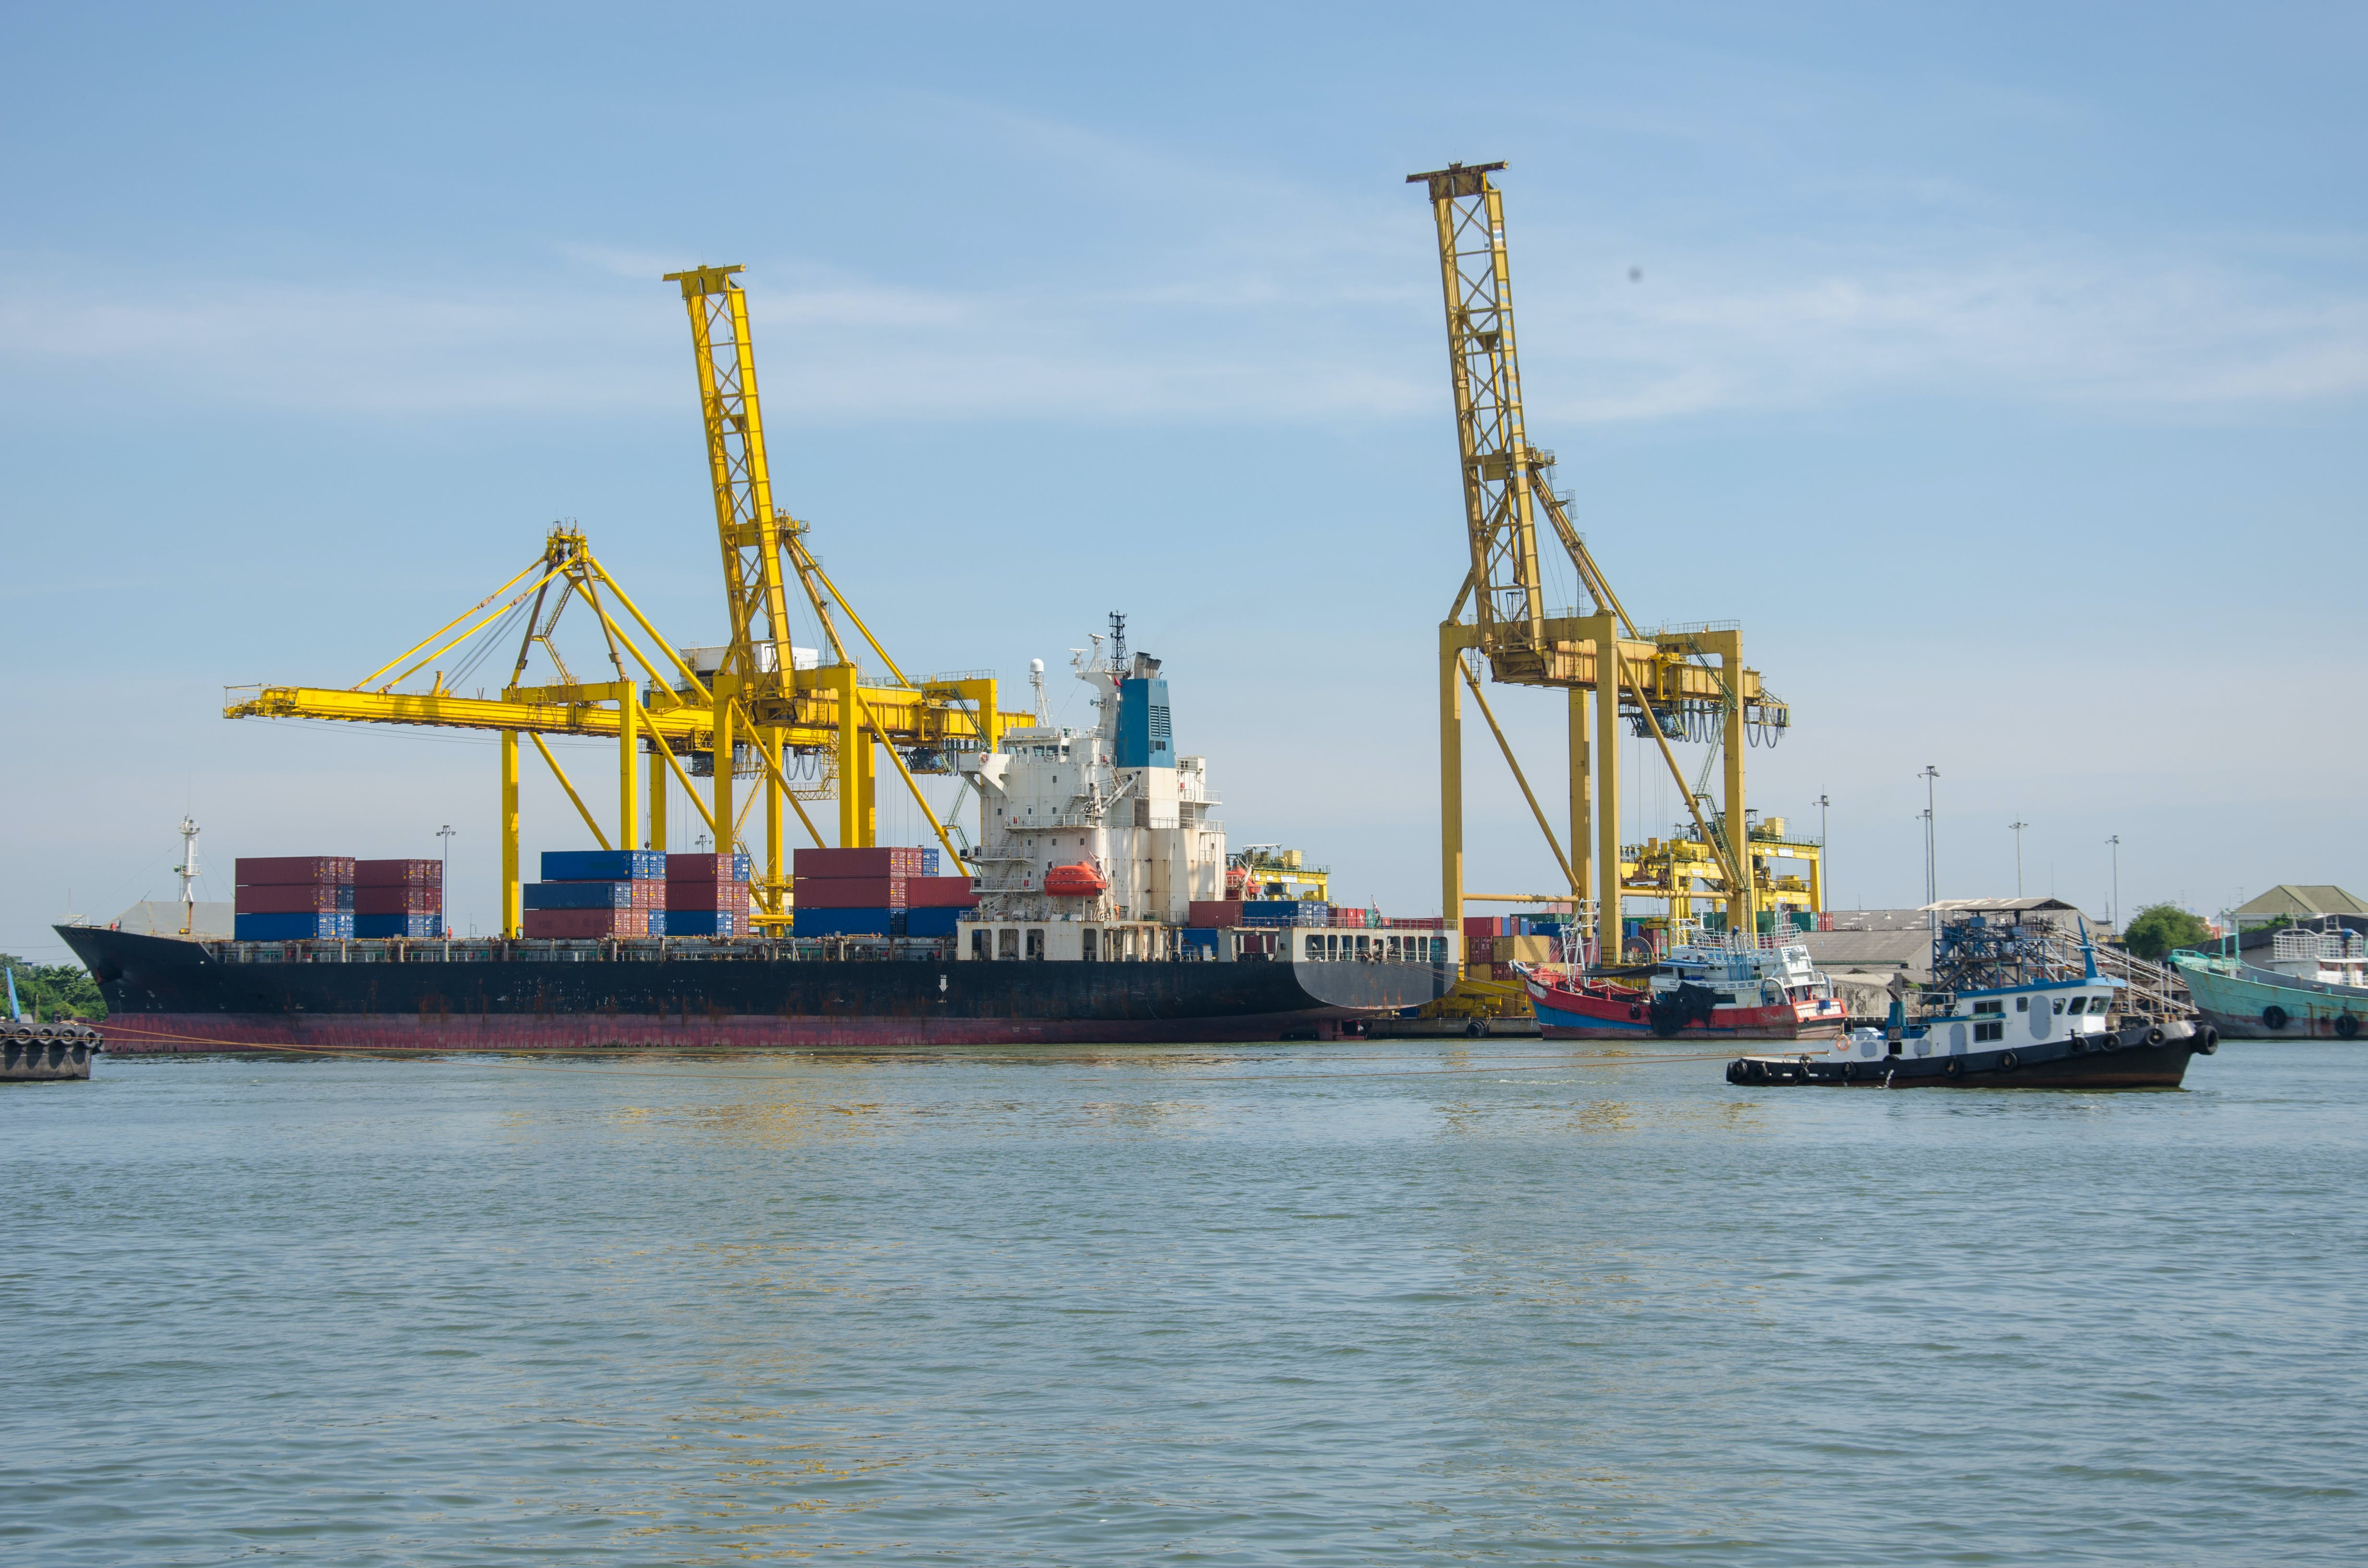 Ship With Container Vans